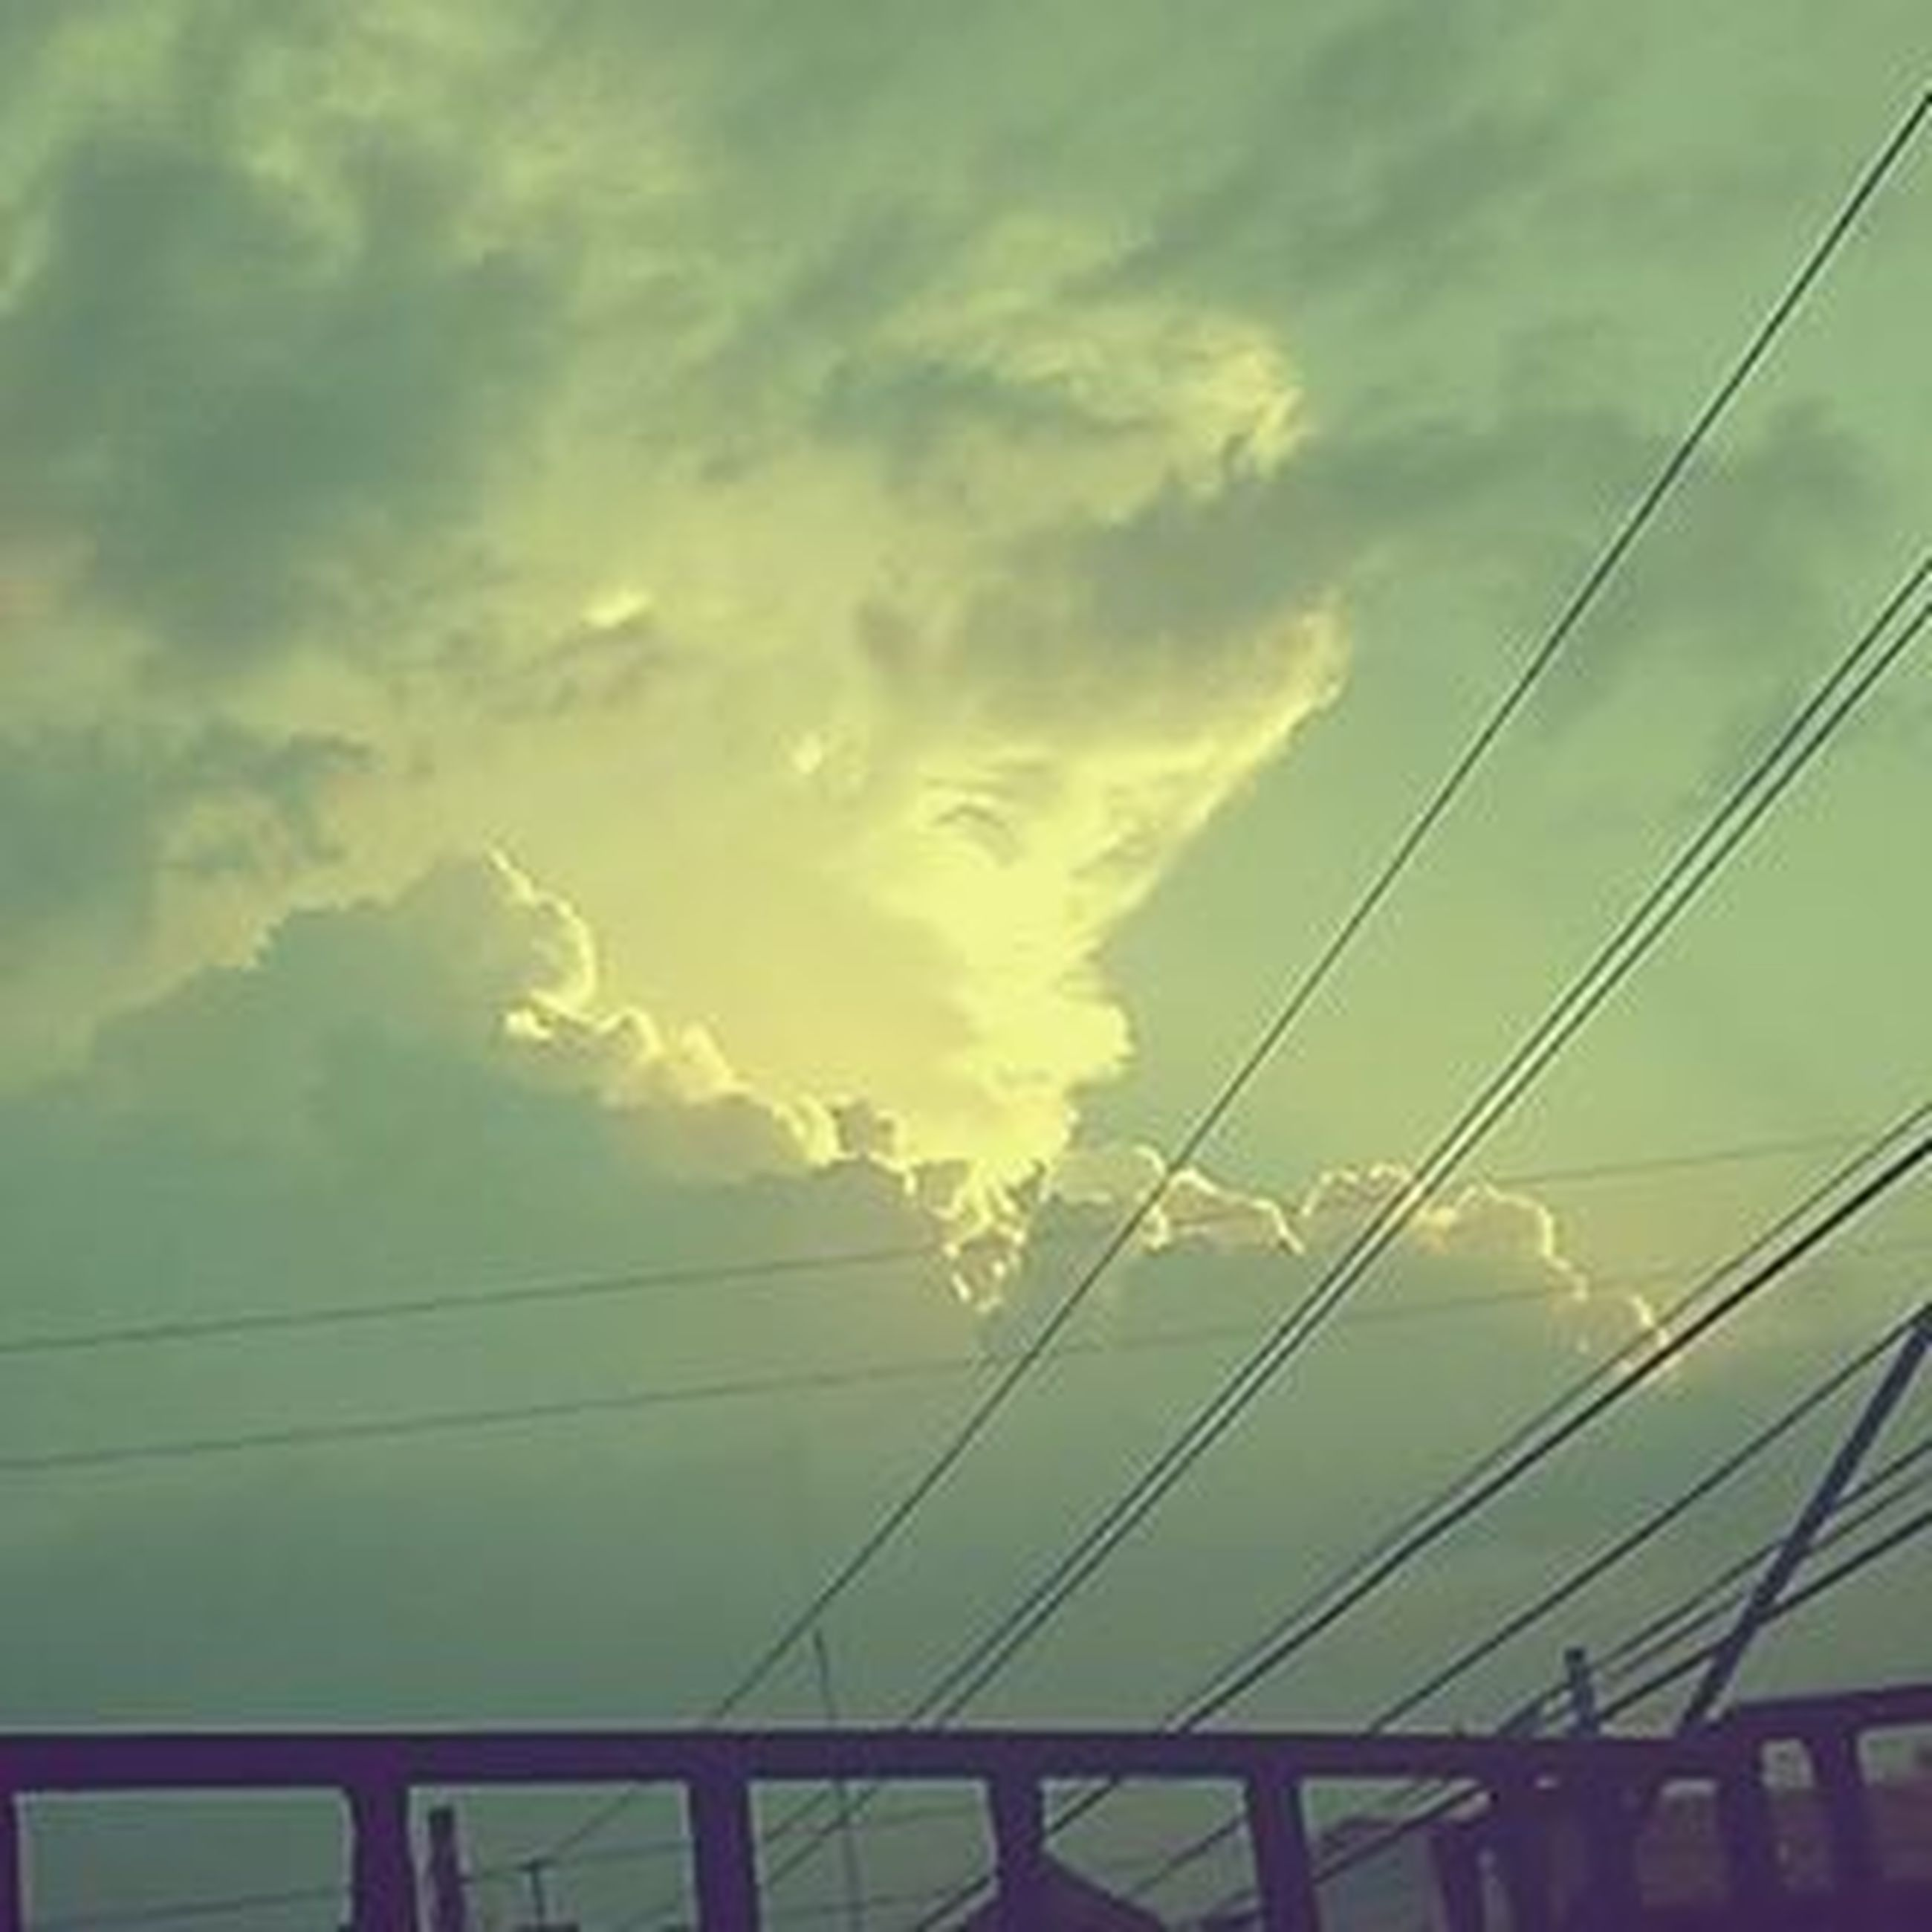 power line, sky, low angle view, electricity pylon, cable, electricity, cloud - sky, power supply, connection, cloudy, sunset, cloud, silhouette, power cable, nature, fuel and power generation, technology, no people, outdoors, beauty in nature